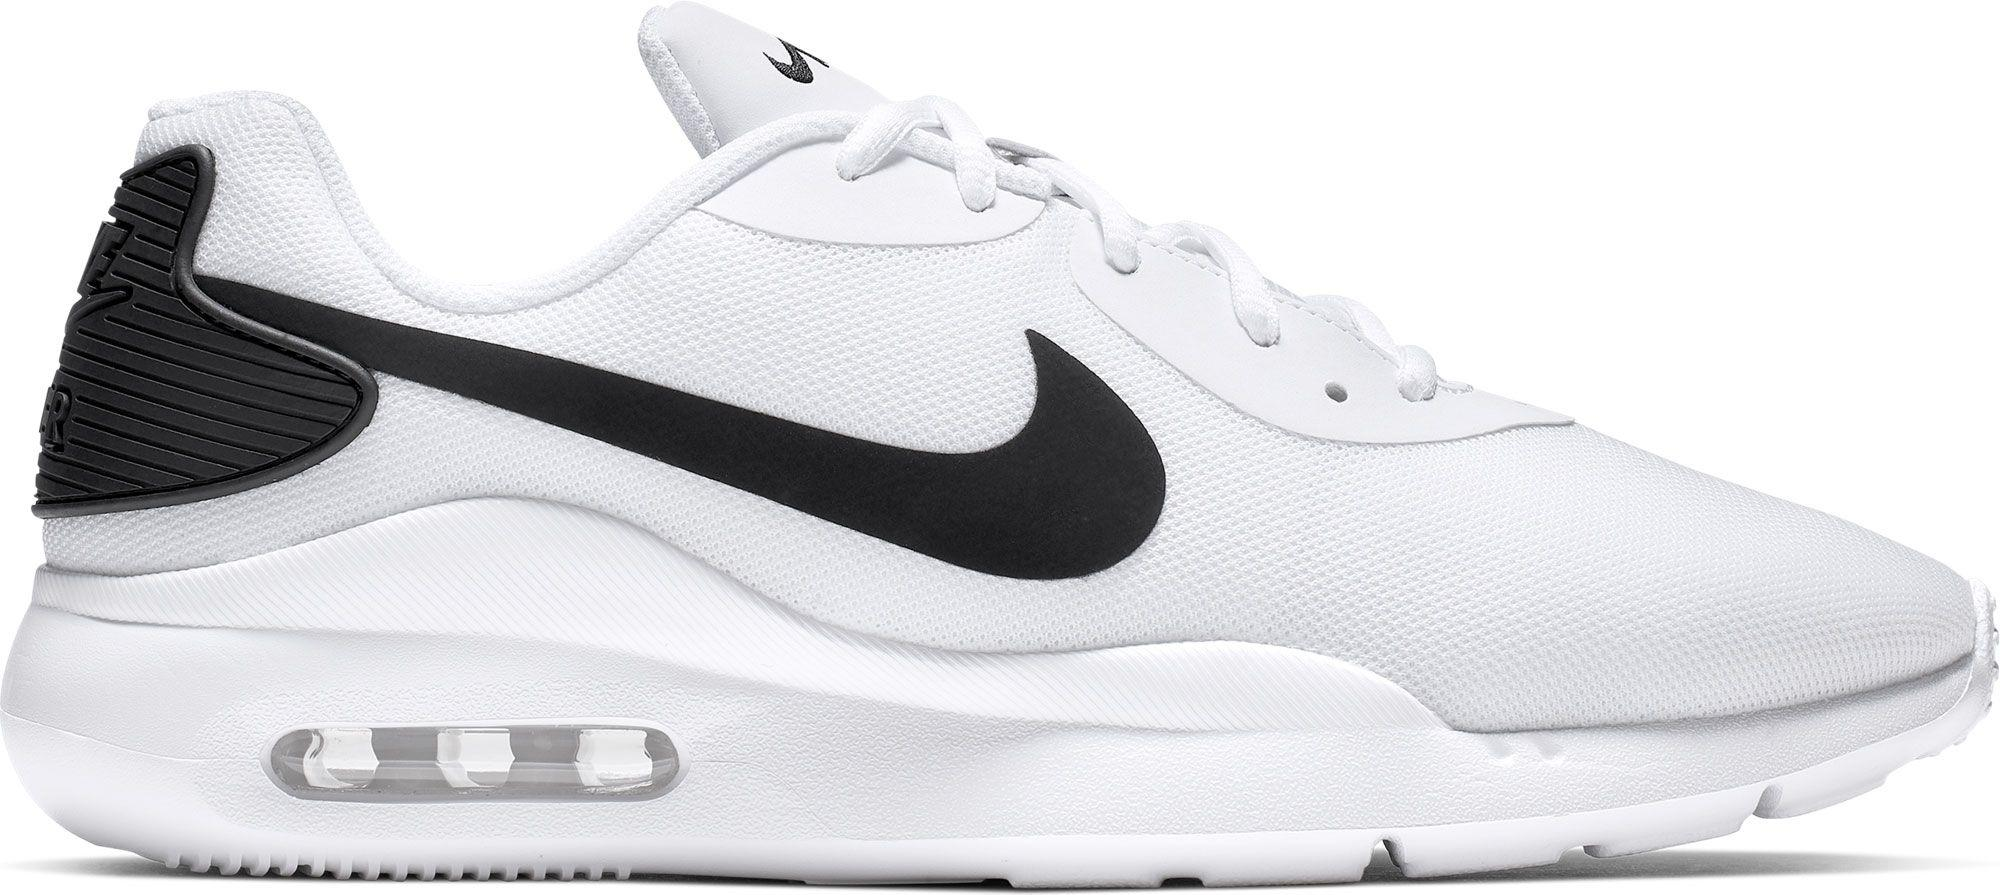 0ad0ef854341e Nike Air Max Oketo Shoes in White for Men - Save 1% - Lyst